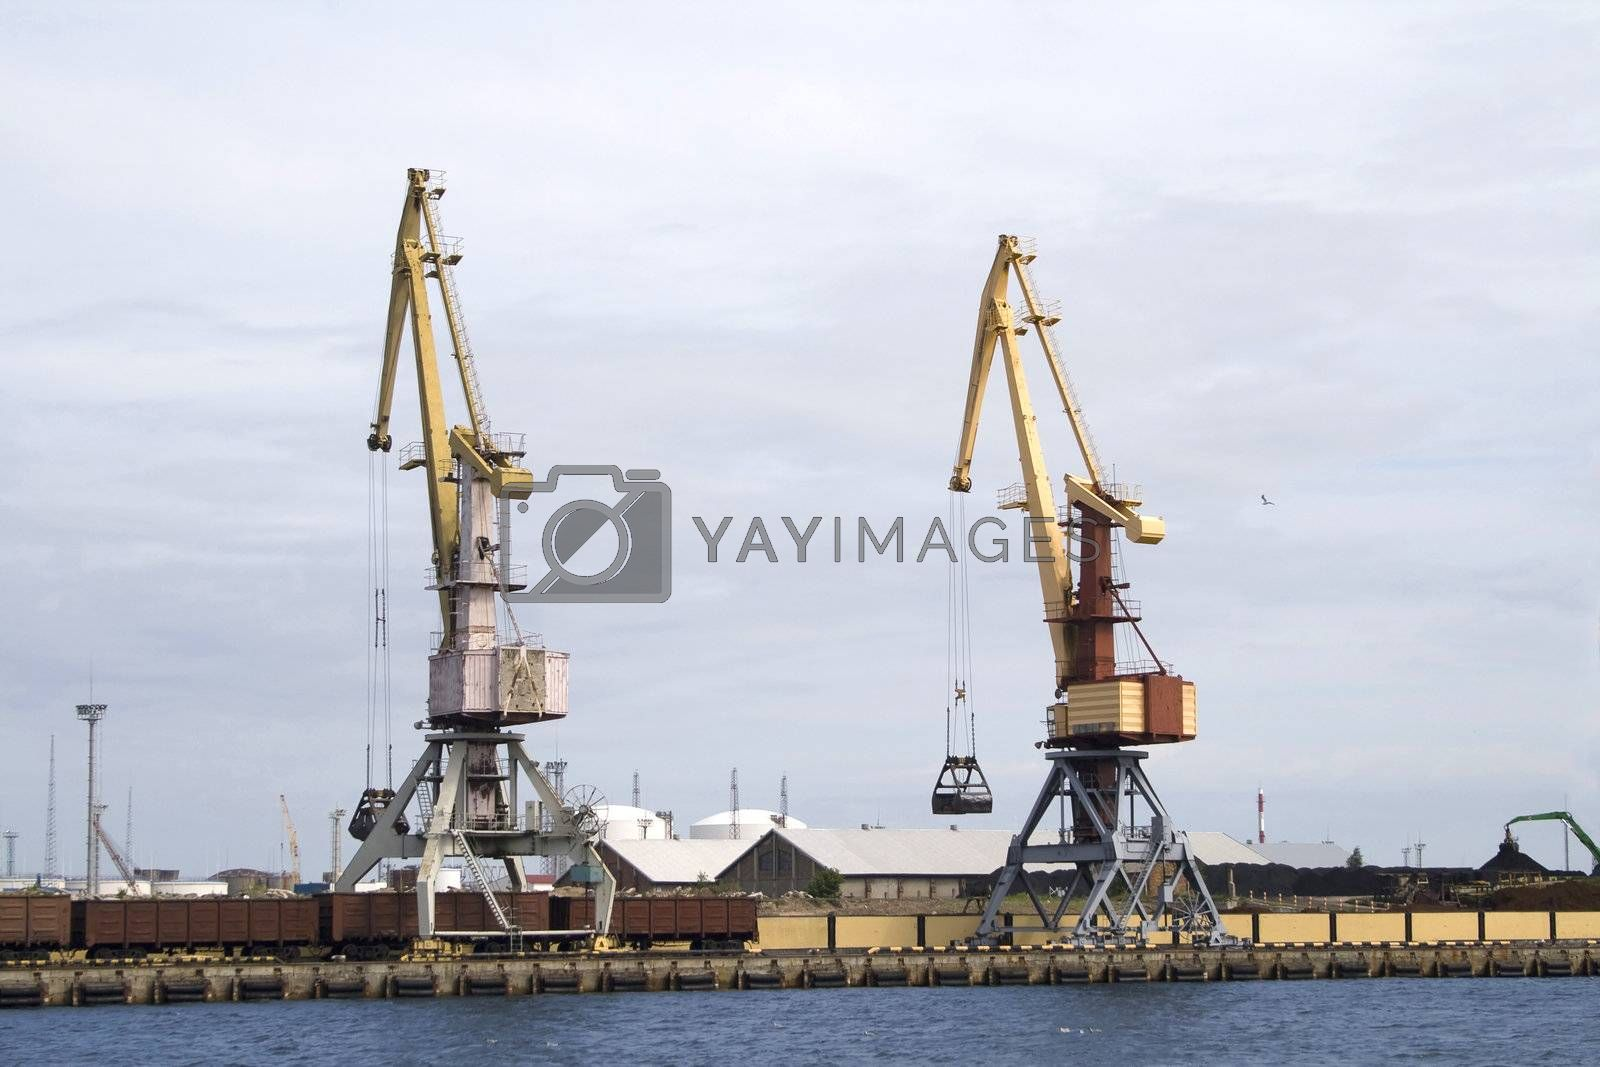 Container cranes for loading and unloading freight trains